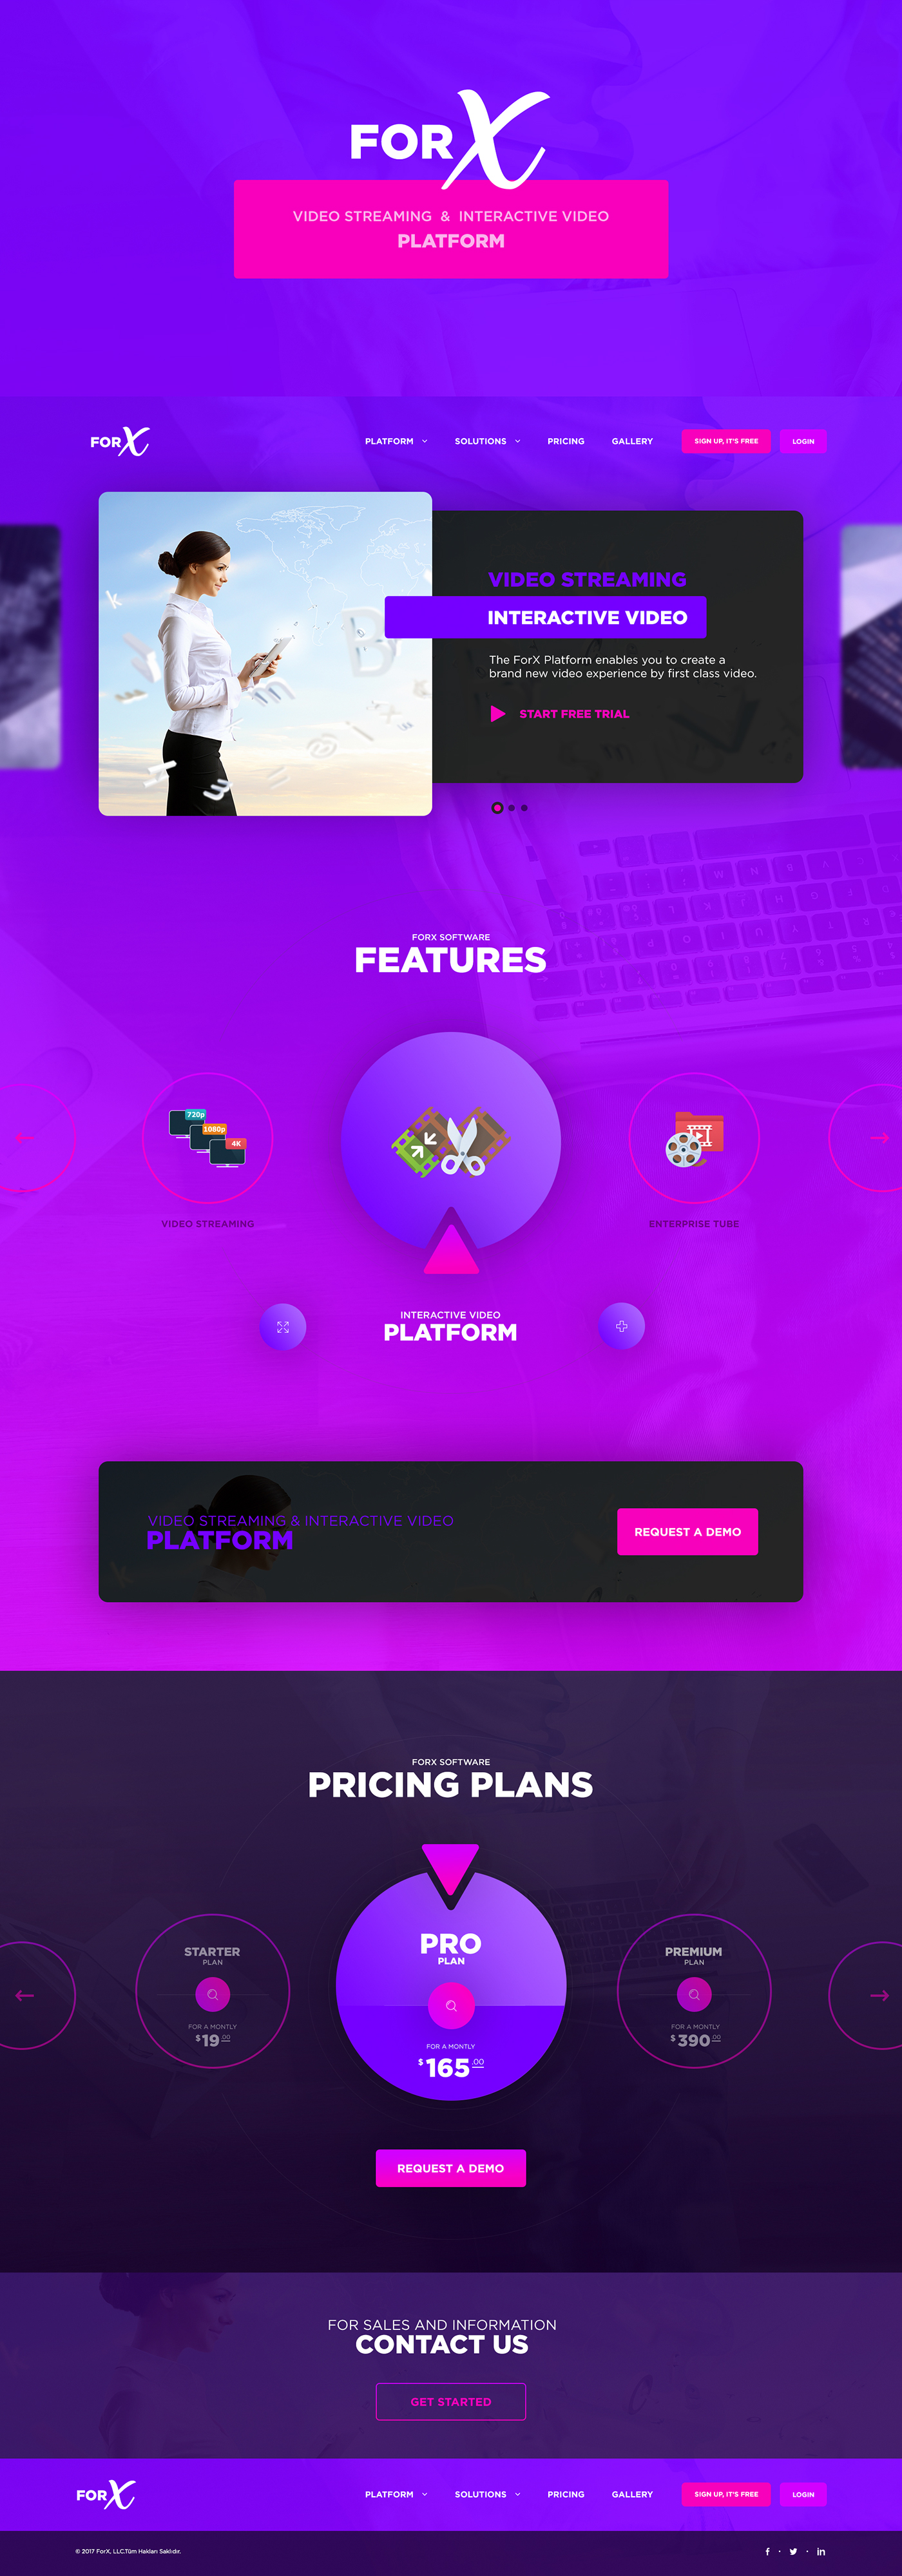 UI ux video Web Streaming concept creative design page